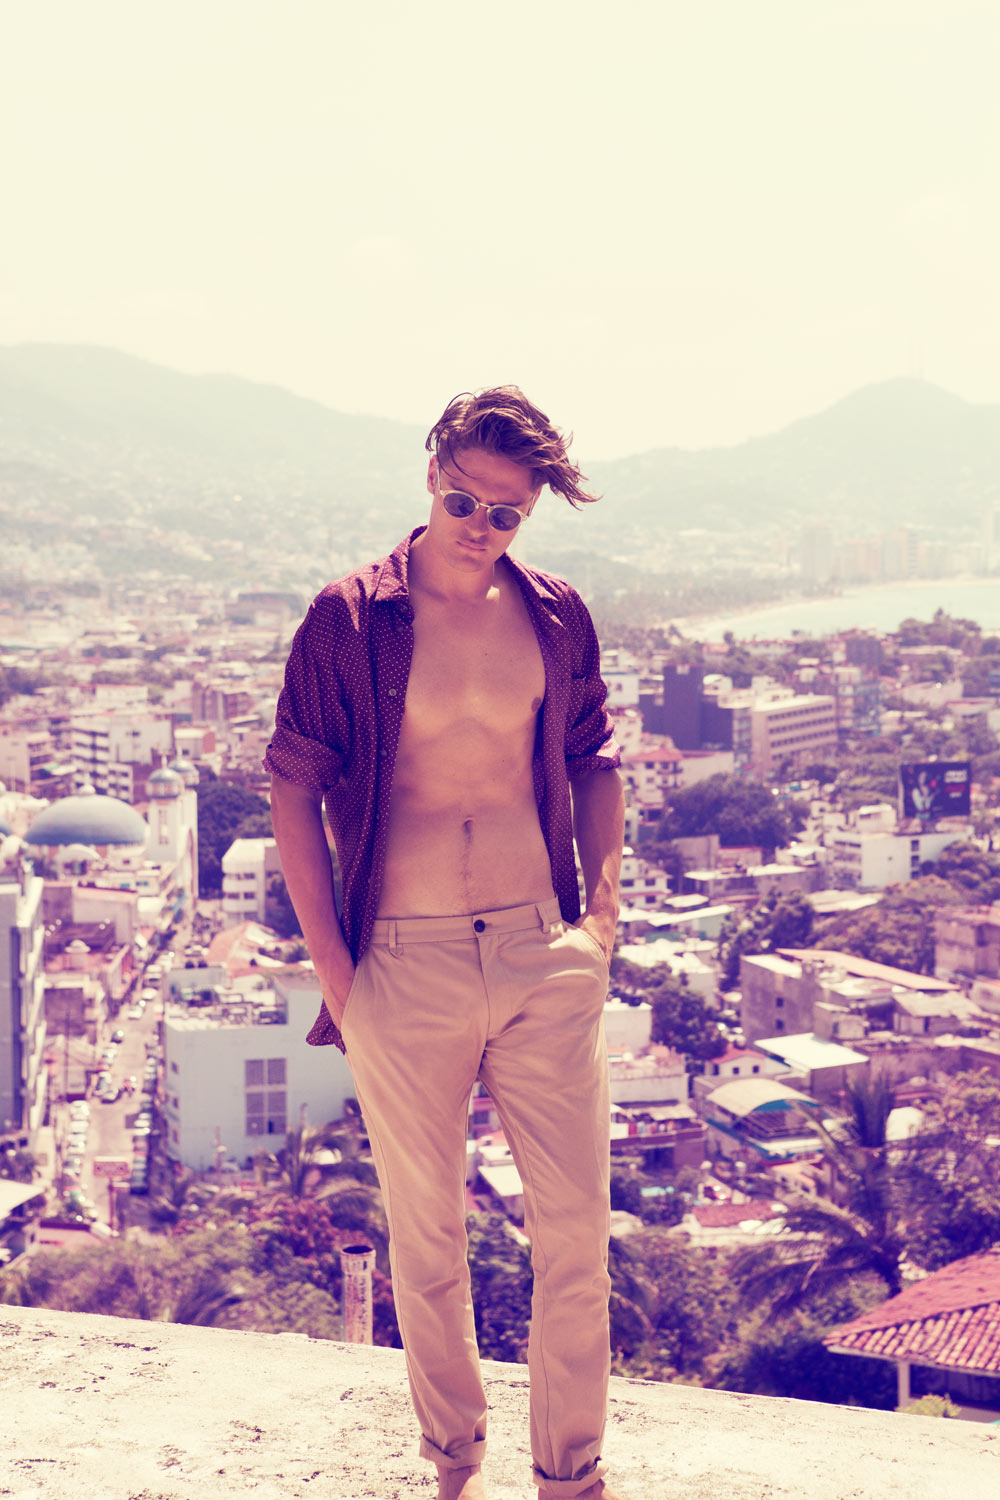 Jacques Naude Visits Mexico for Icon Magazine #7